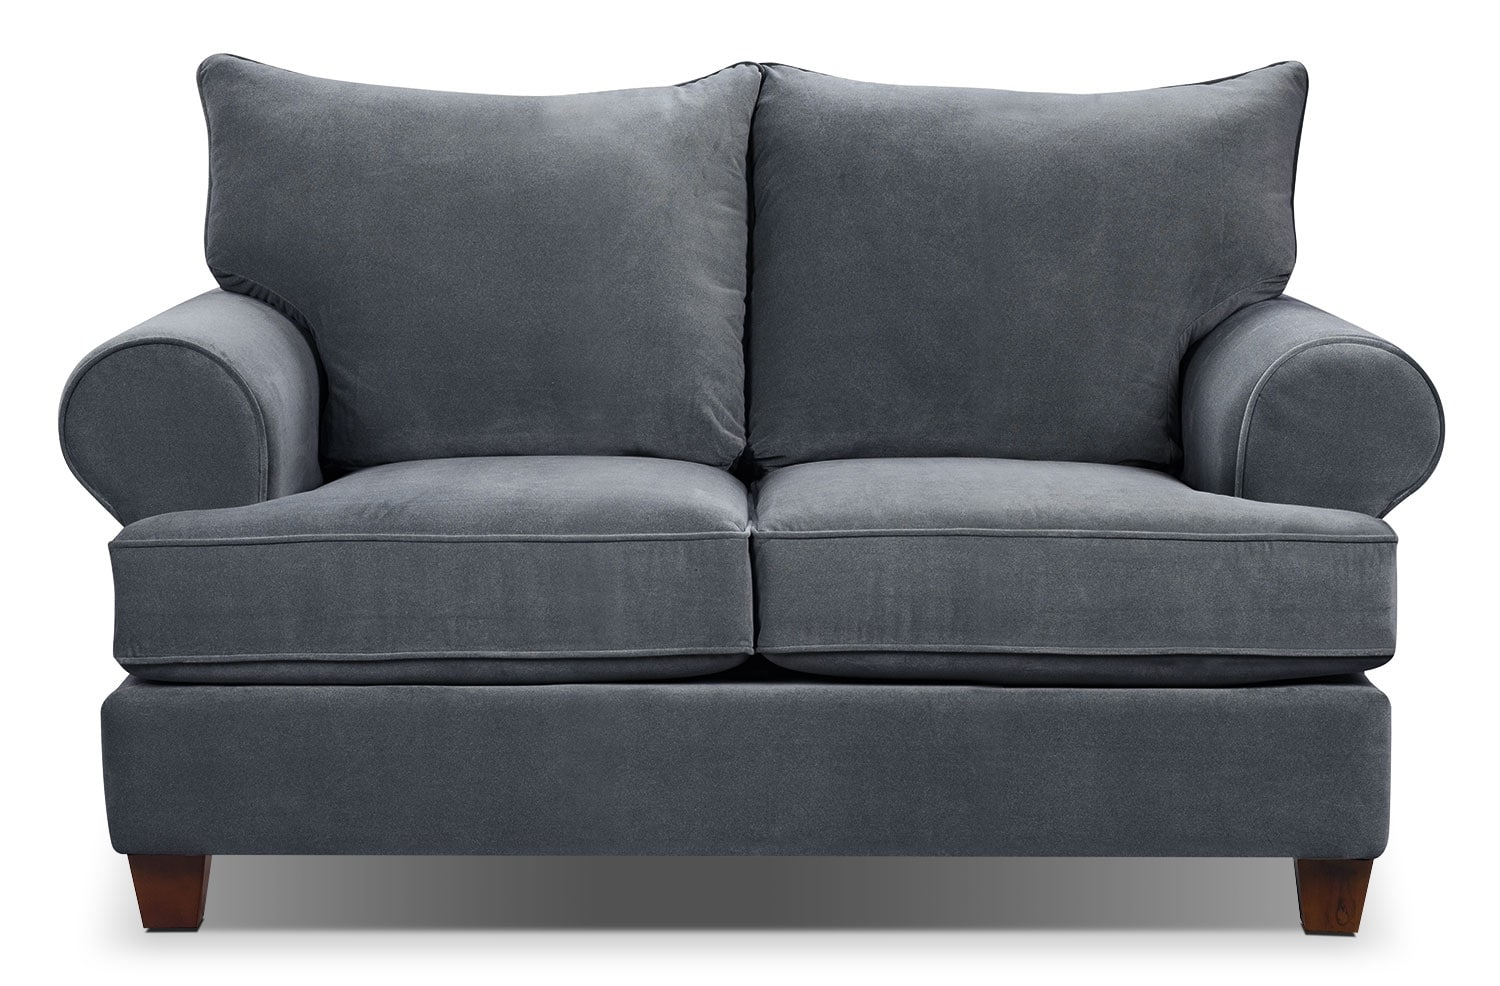 Paige Microsuede Loveseat Grey The Brick